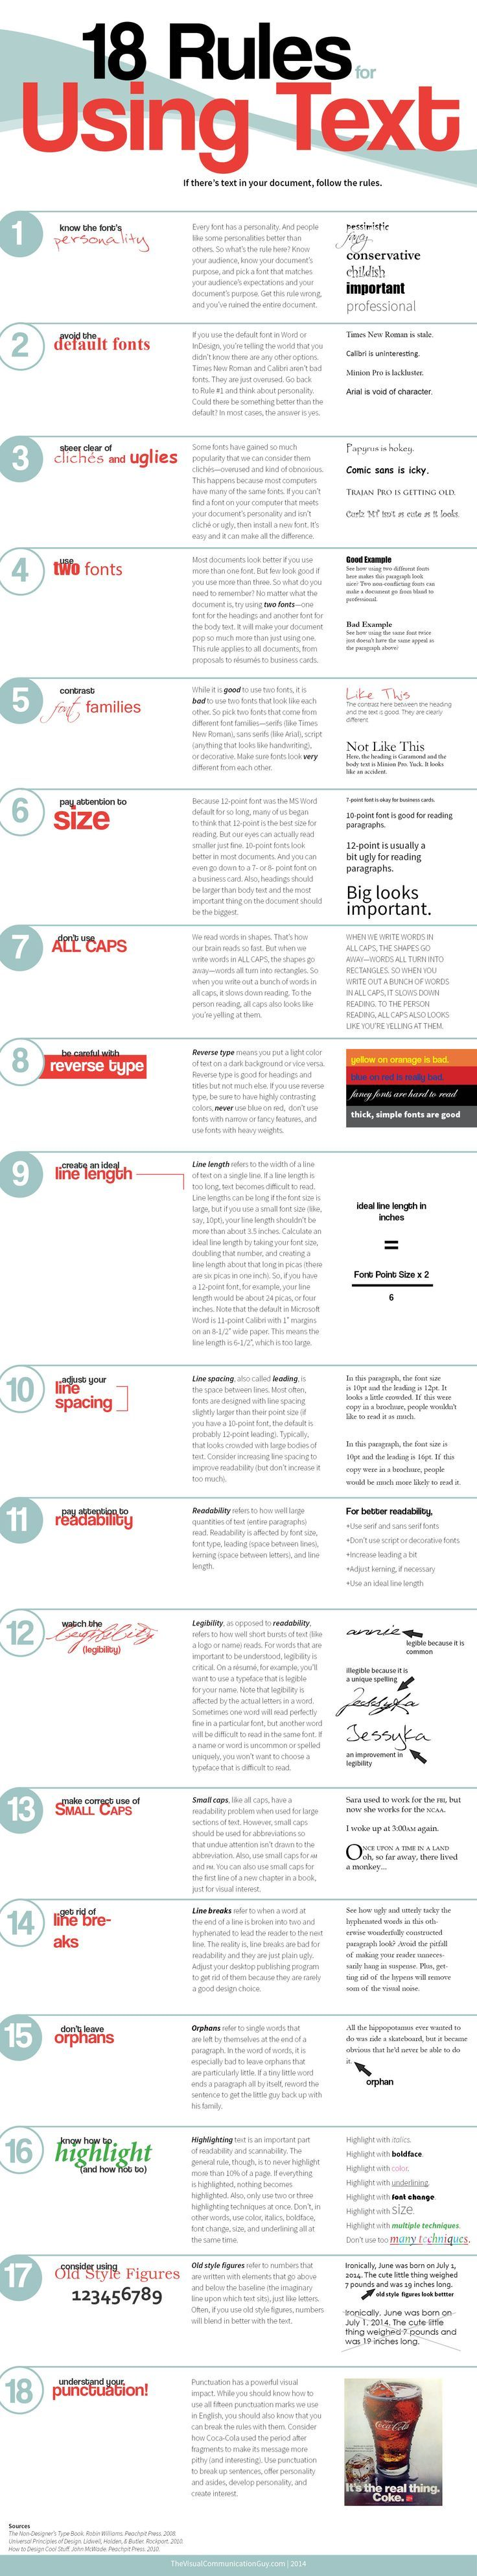 18 Rules for Using Text and typography, primarily for infographics and blogs but useful for Prezi and PowerPoint design, too